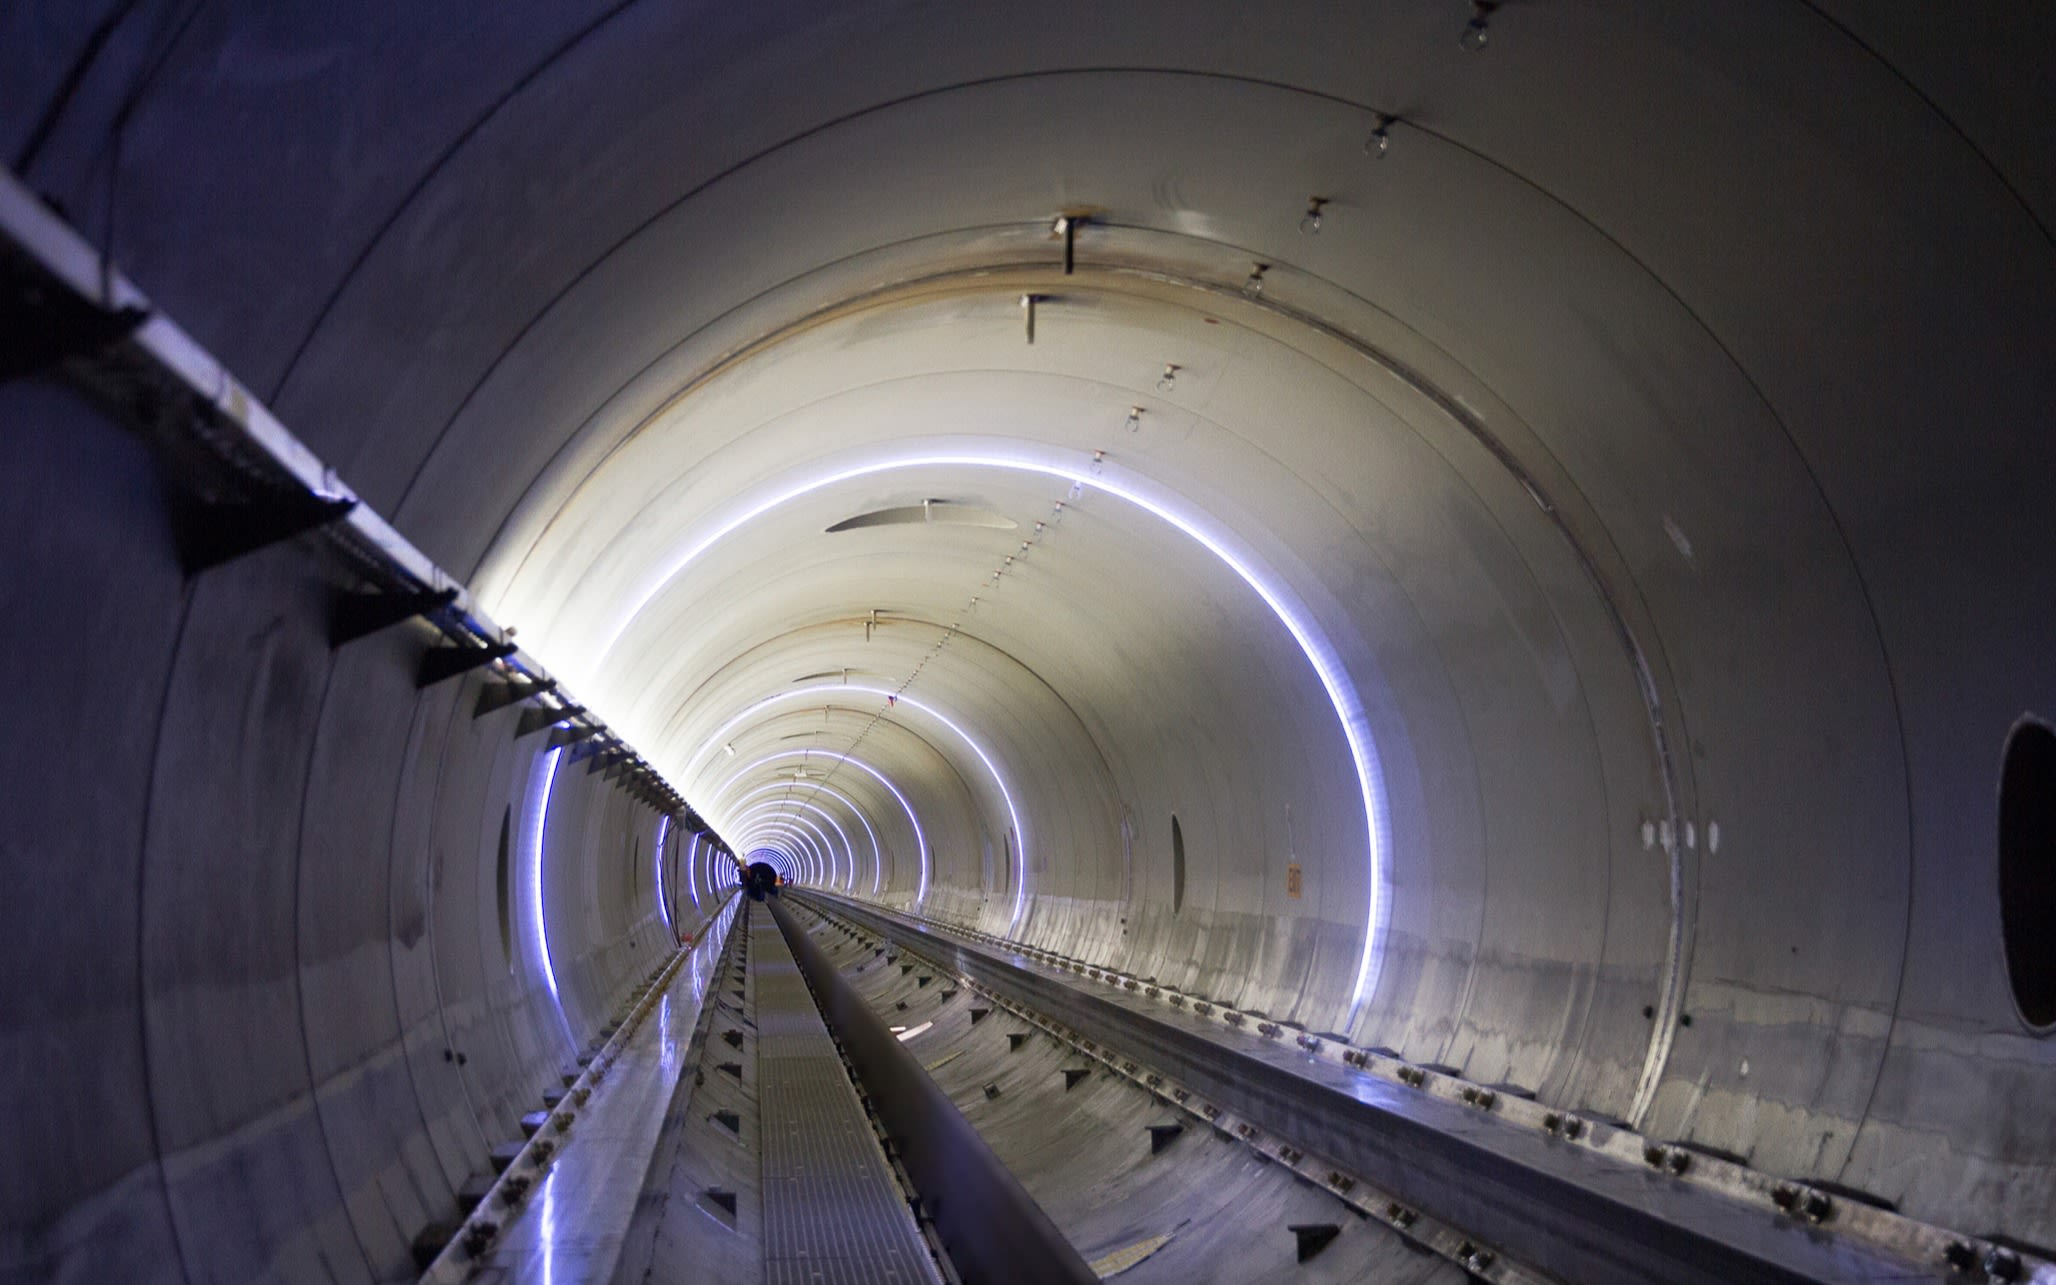 Inside of the Hyperloop